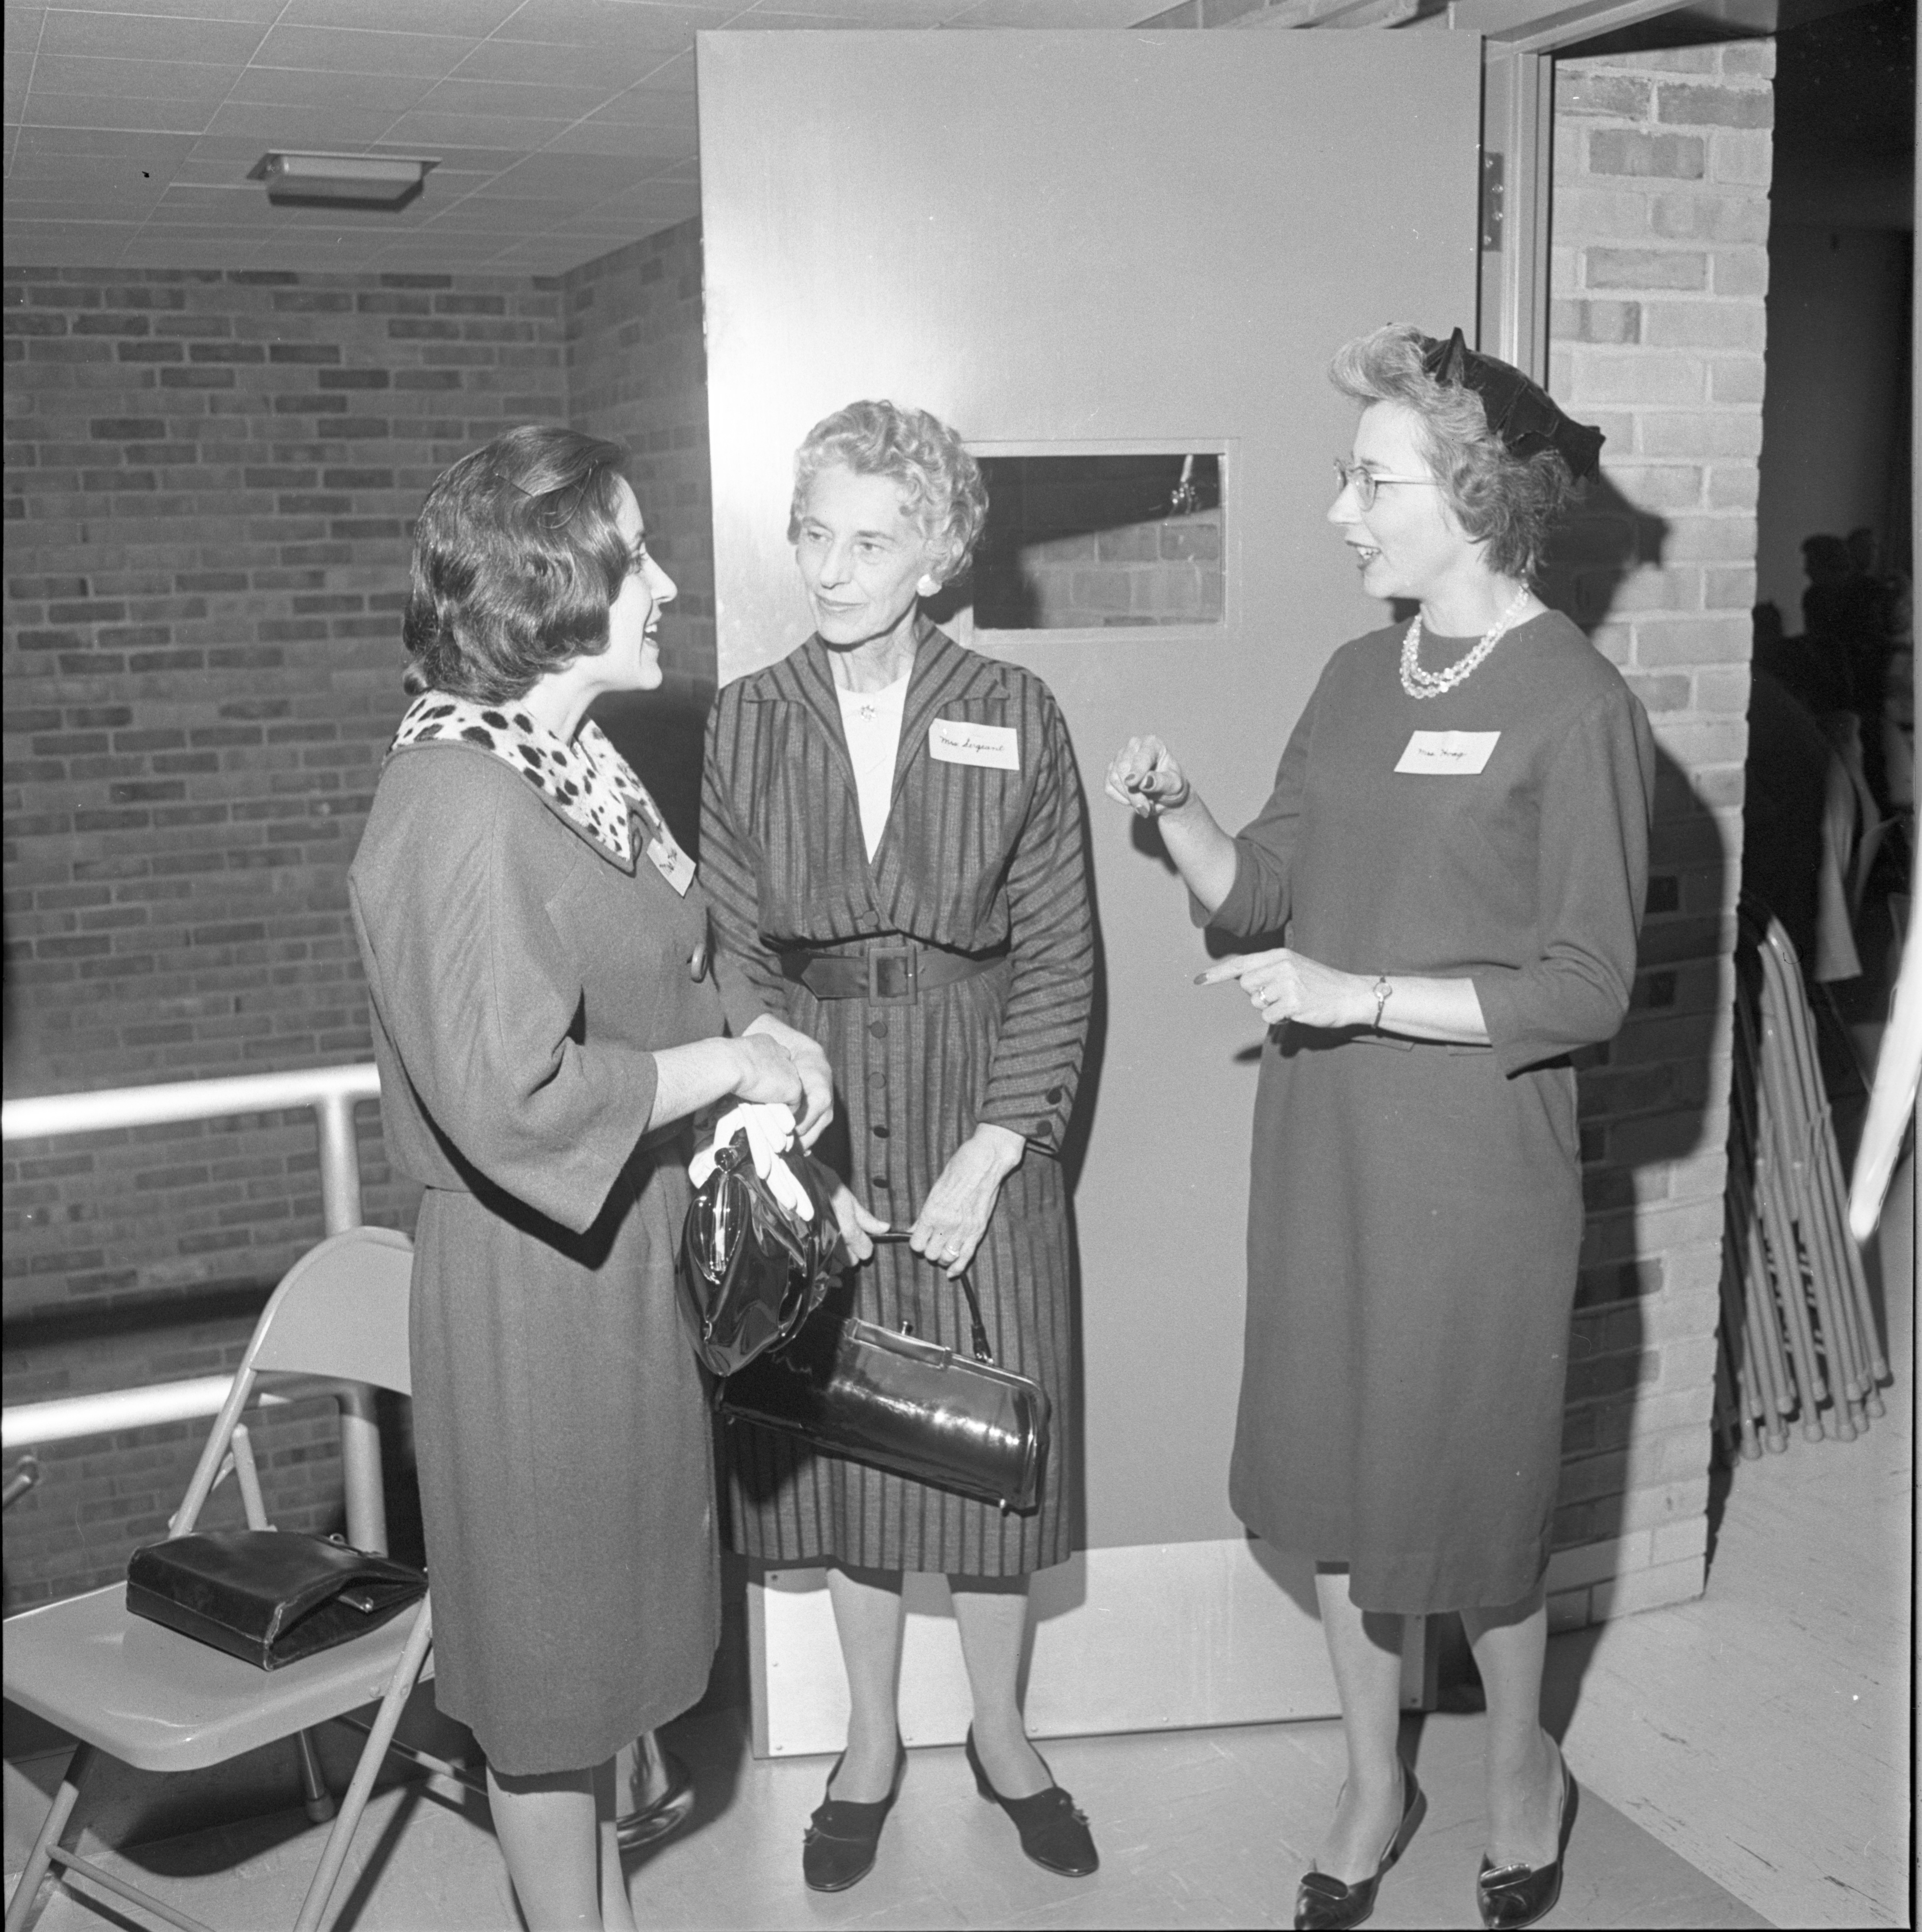 Guests Are Greeted At The League Of Women Voters Annual Membership Dessert, September 1962 image